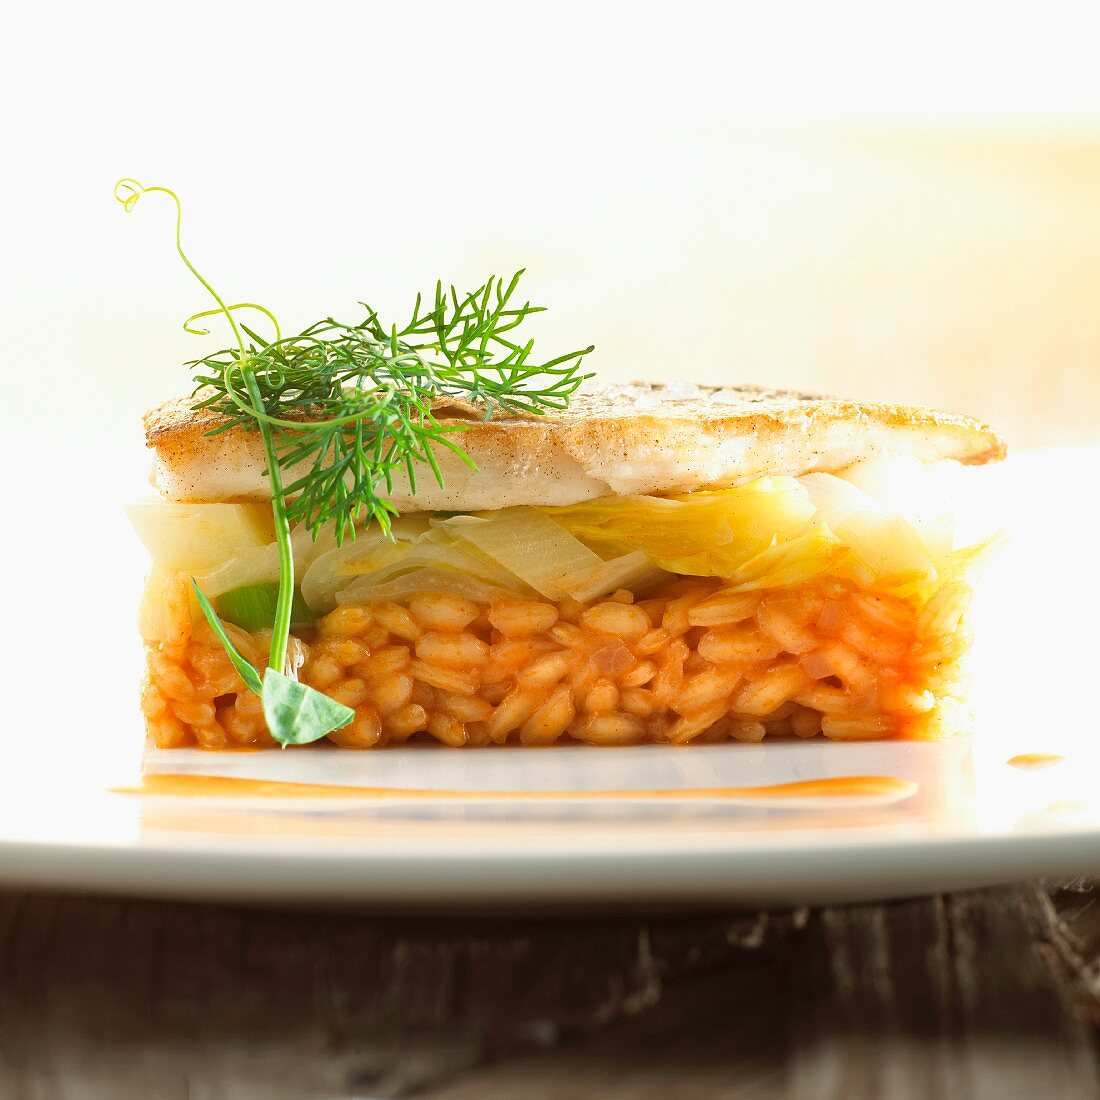 Fish fillet with chicory on a bed of risotto